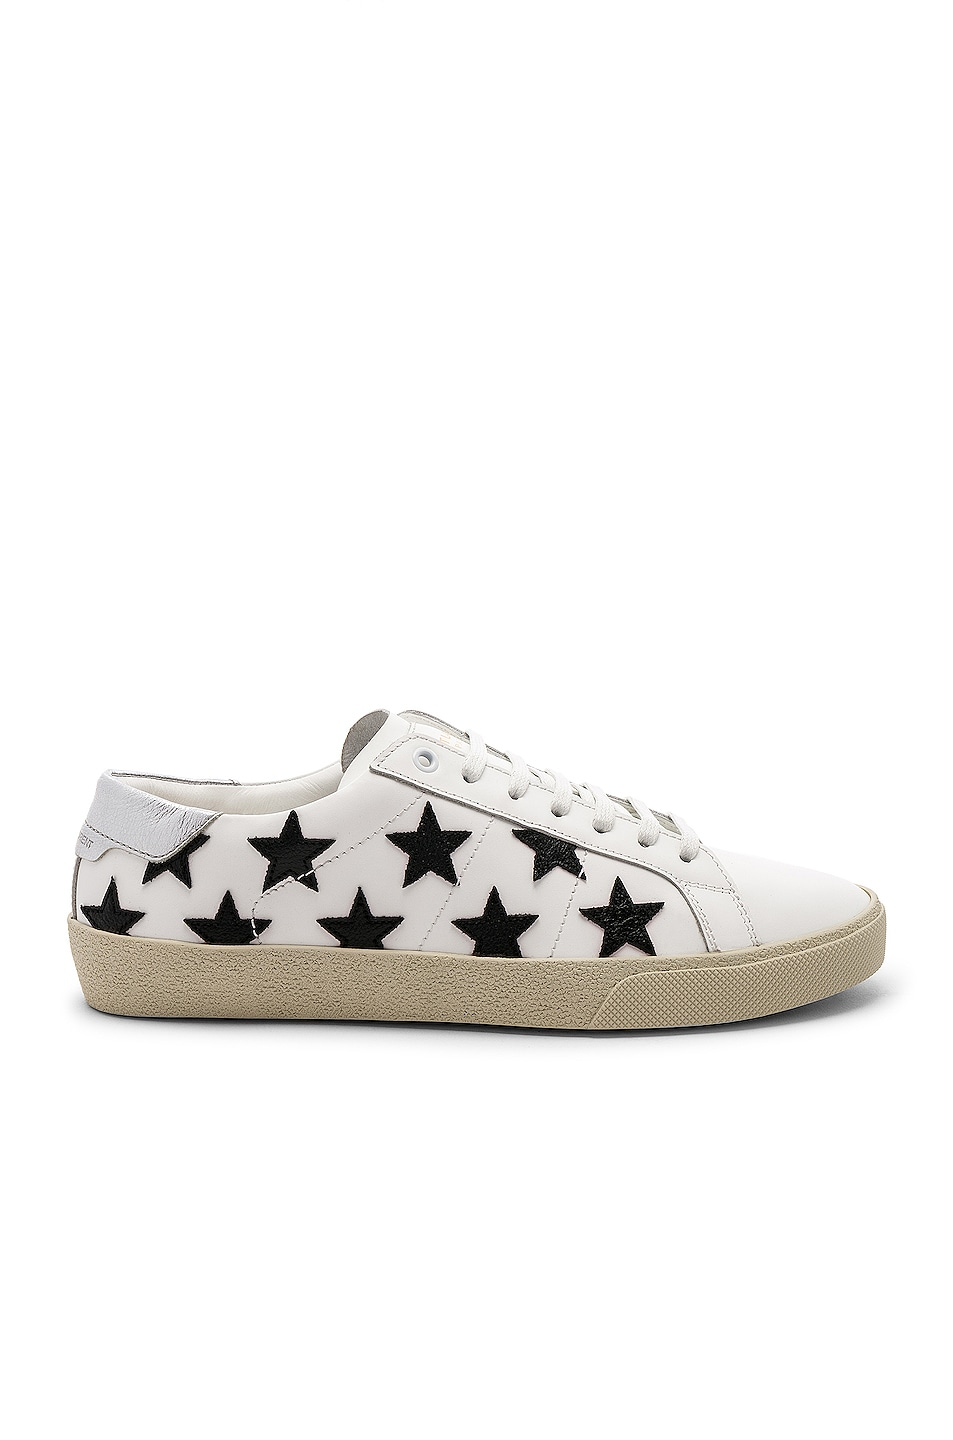 Image 1 of Saint Laurent Leather SL/06 Low-Top Star Sneakers in Optic White & Black & Silver